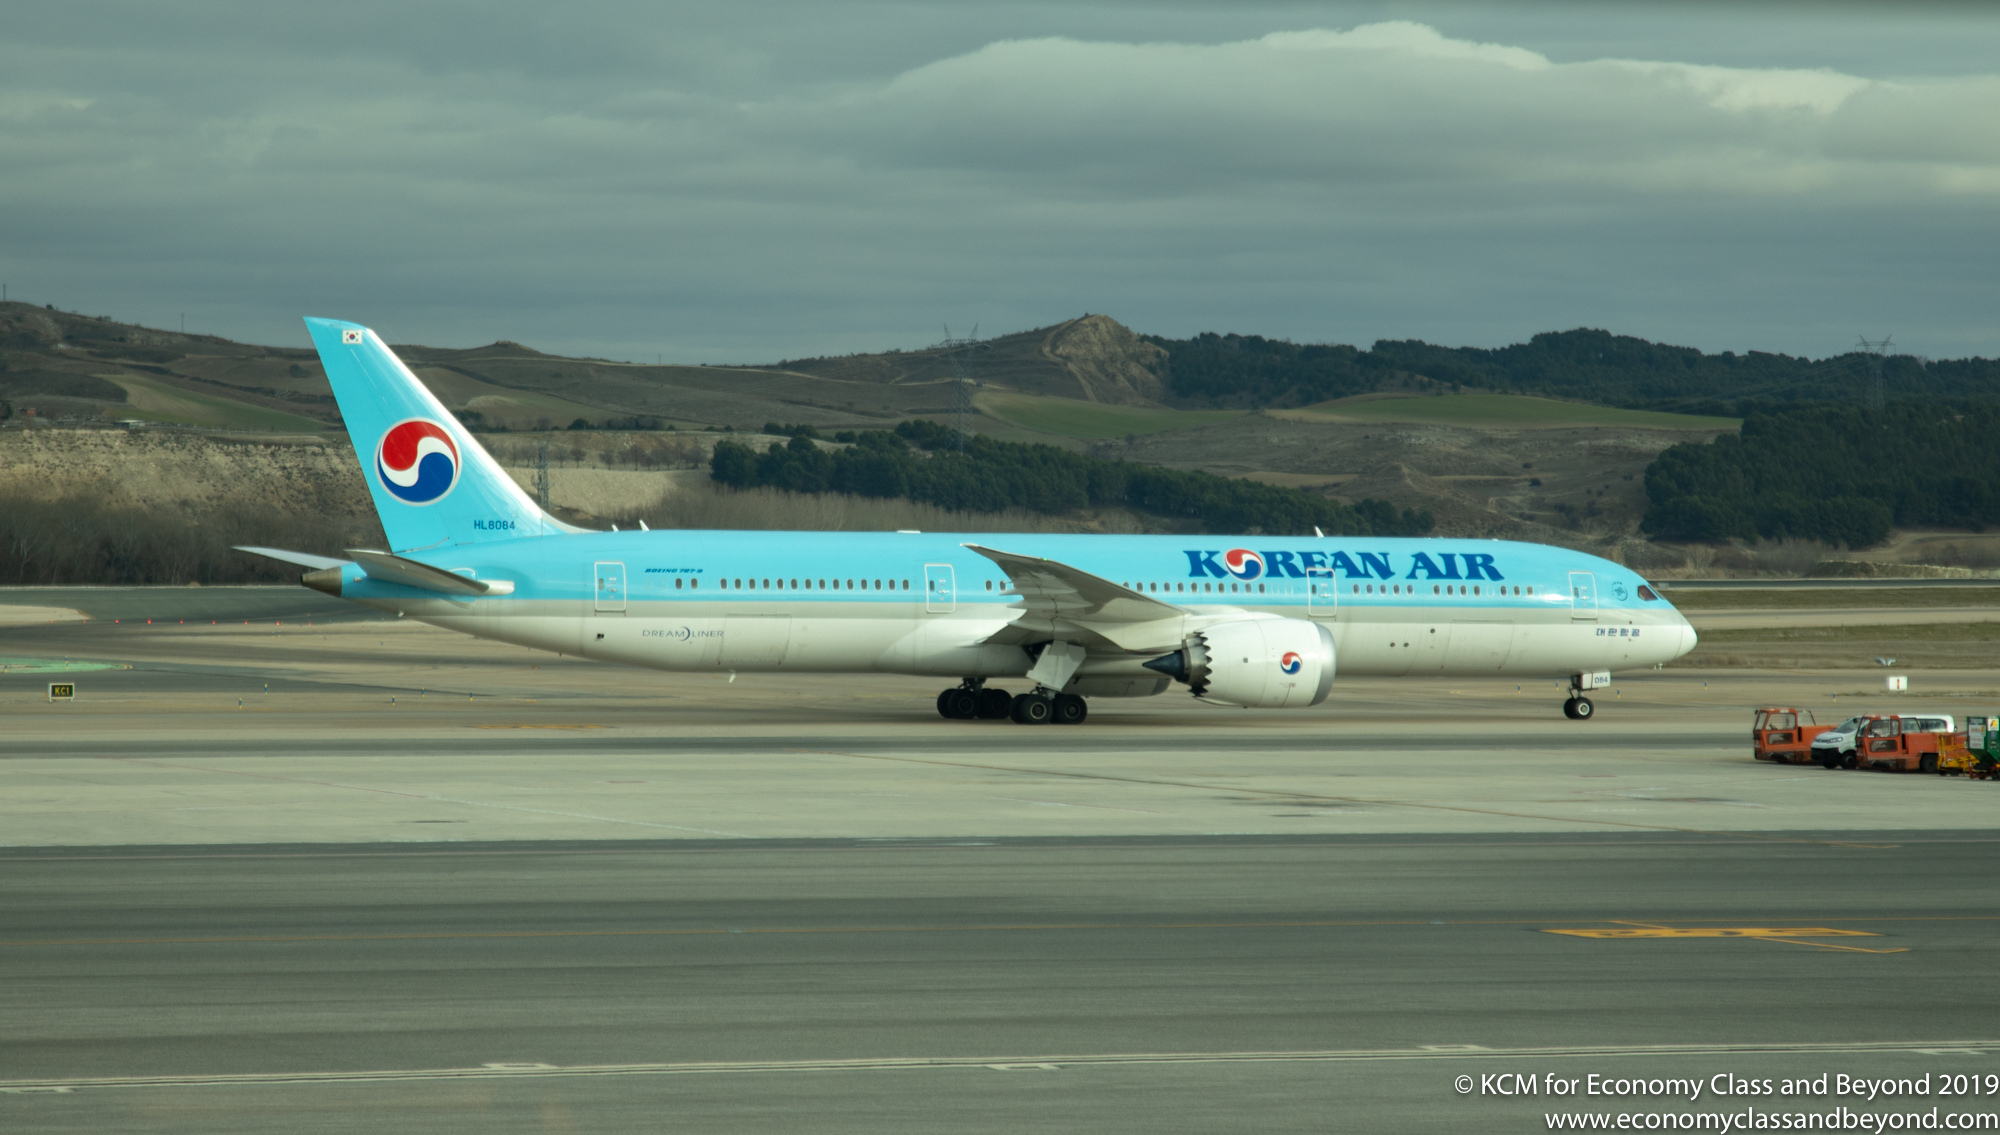 Airplane Art - Korean Air Boeing 787-9 at Madrid Barajas airport - Economy Class & Beyond